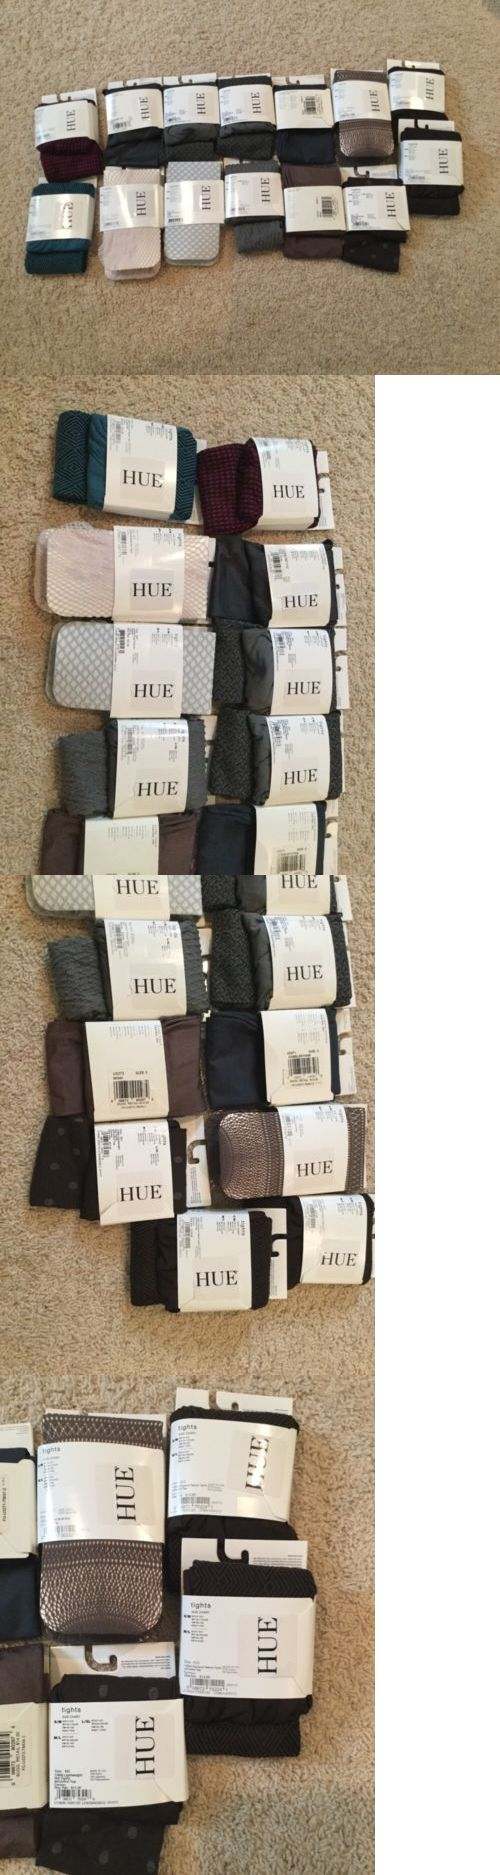 Pantyhose and Tights 11525: Nwt Bulk Mixed Lot Hue Tights M L 14 Pairs -> BUY IT NOW ONLY: $52.99 on eBay!